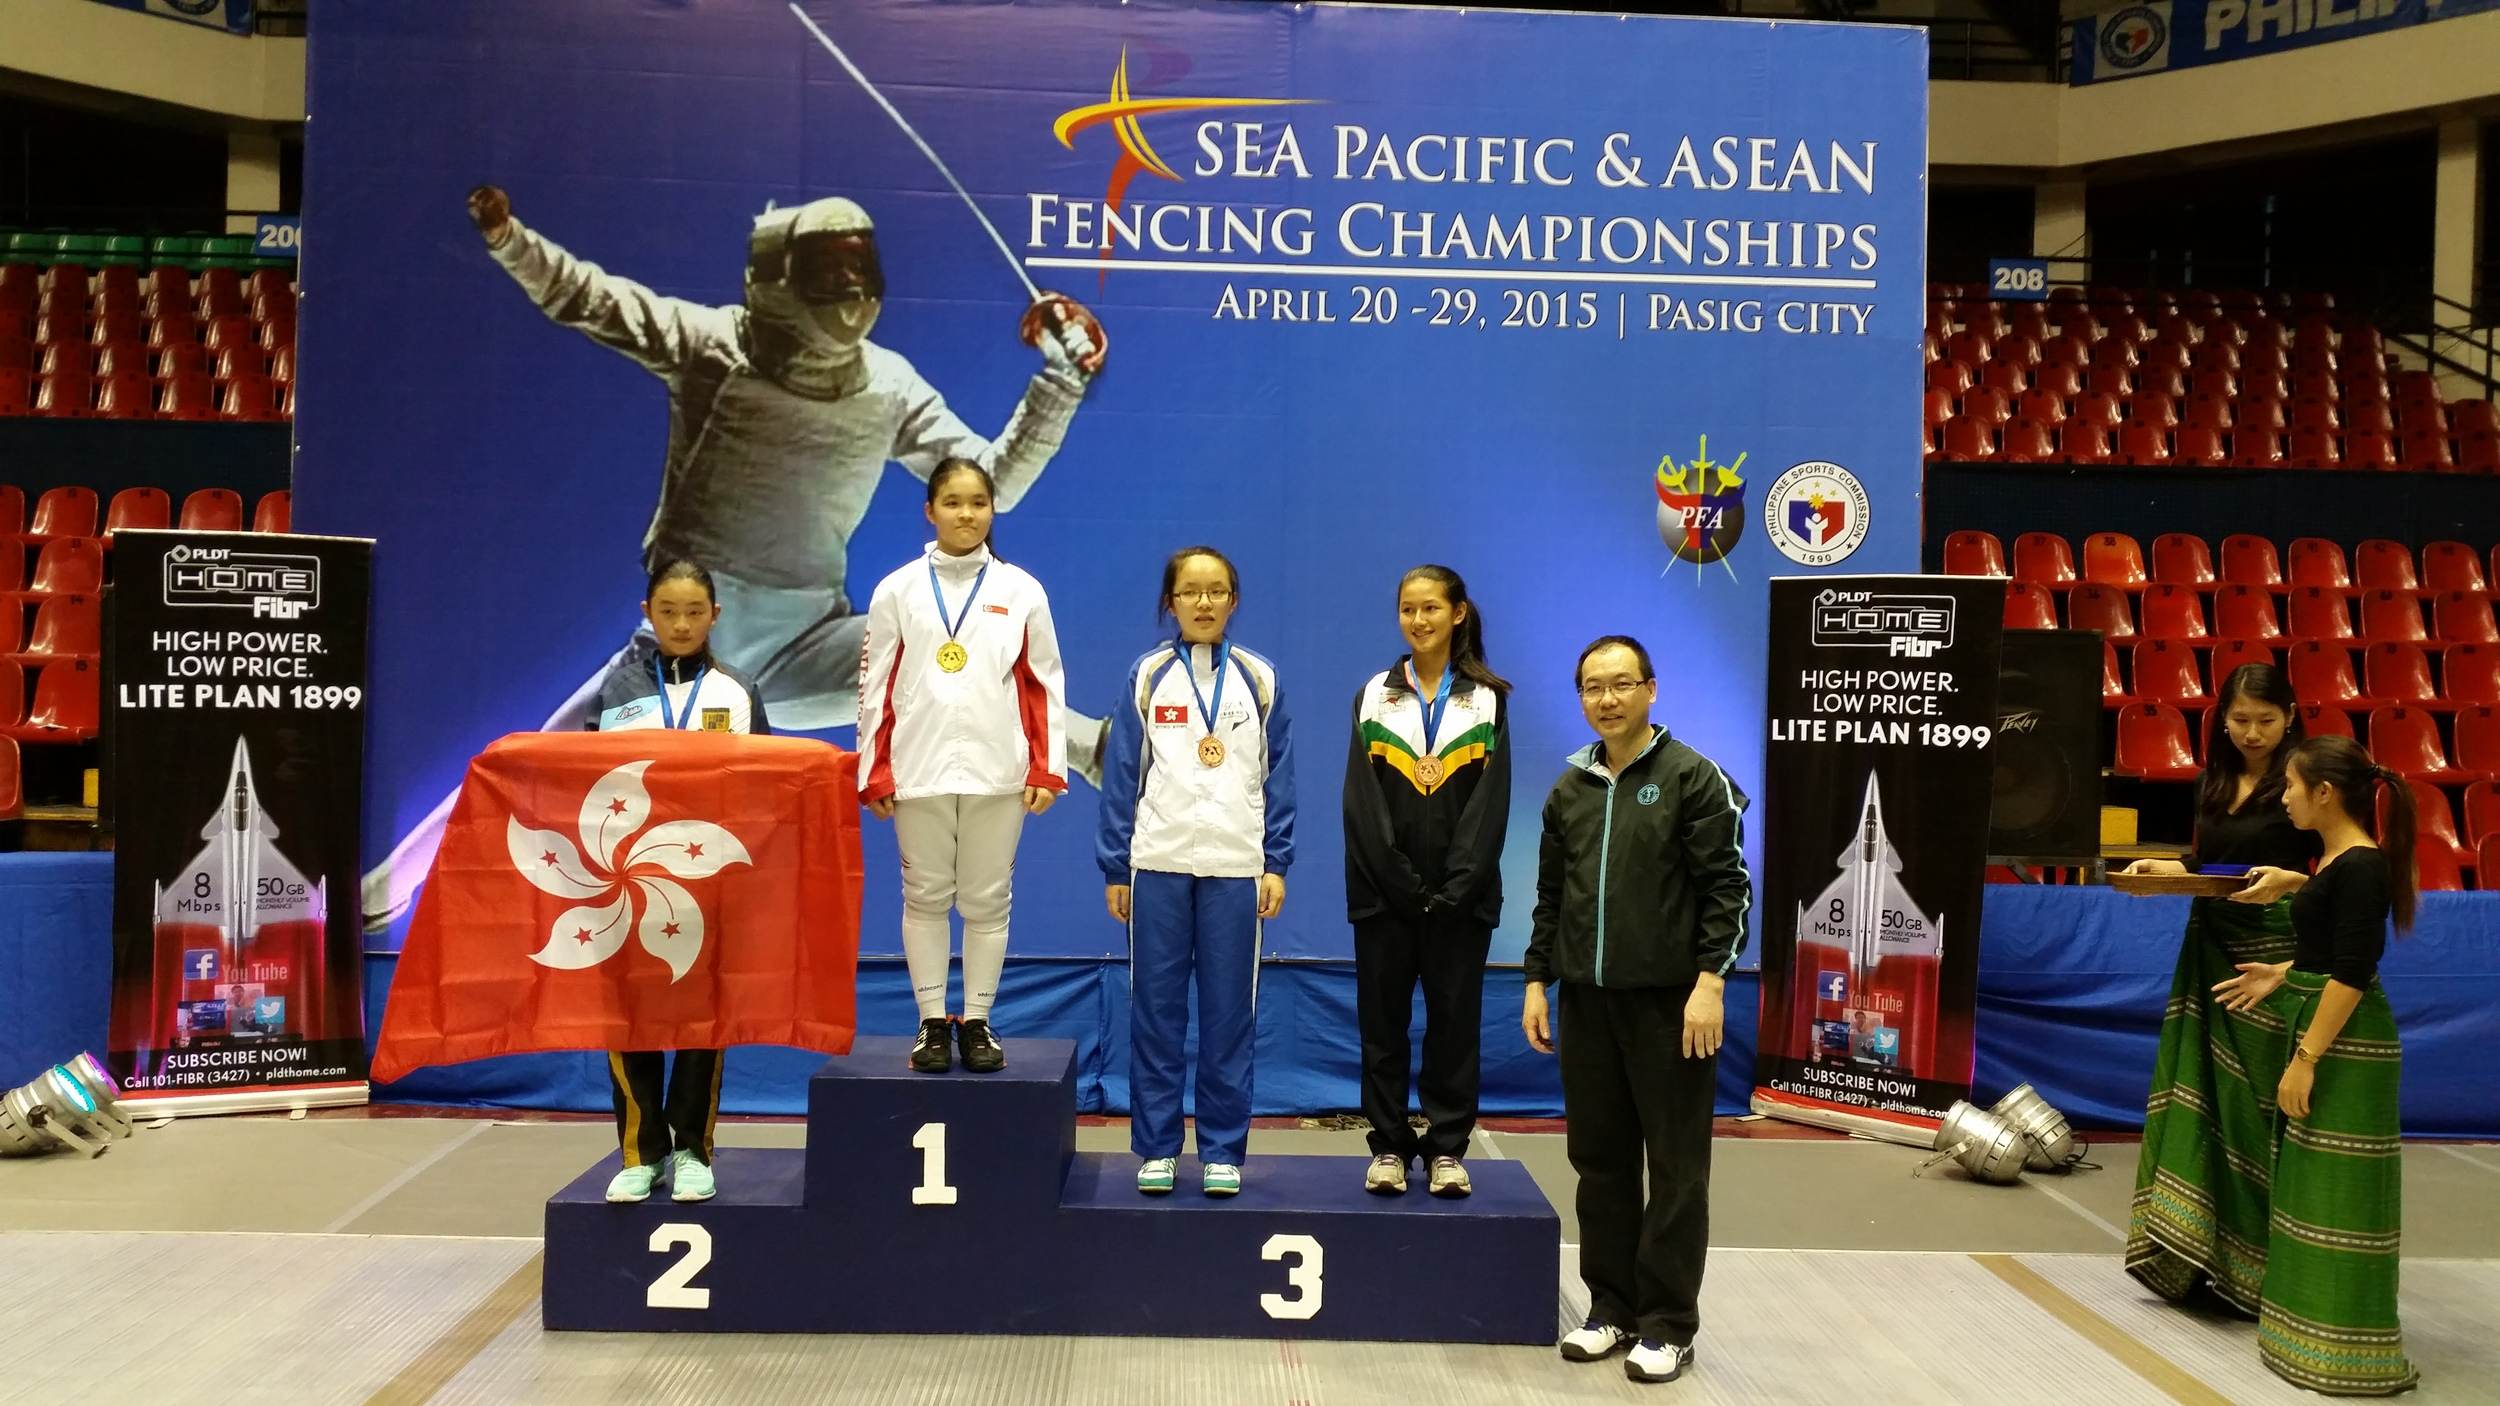 Maxine Wong SEA Pacific and ASEAN Championships 2015.jpg